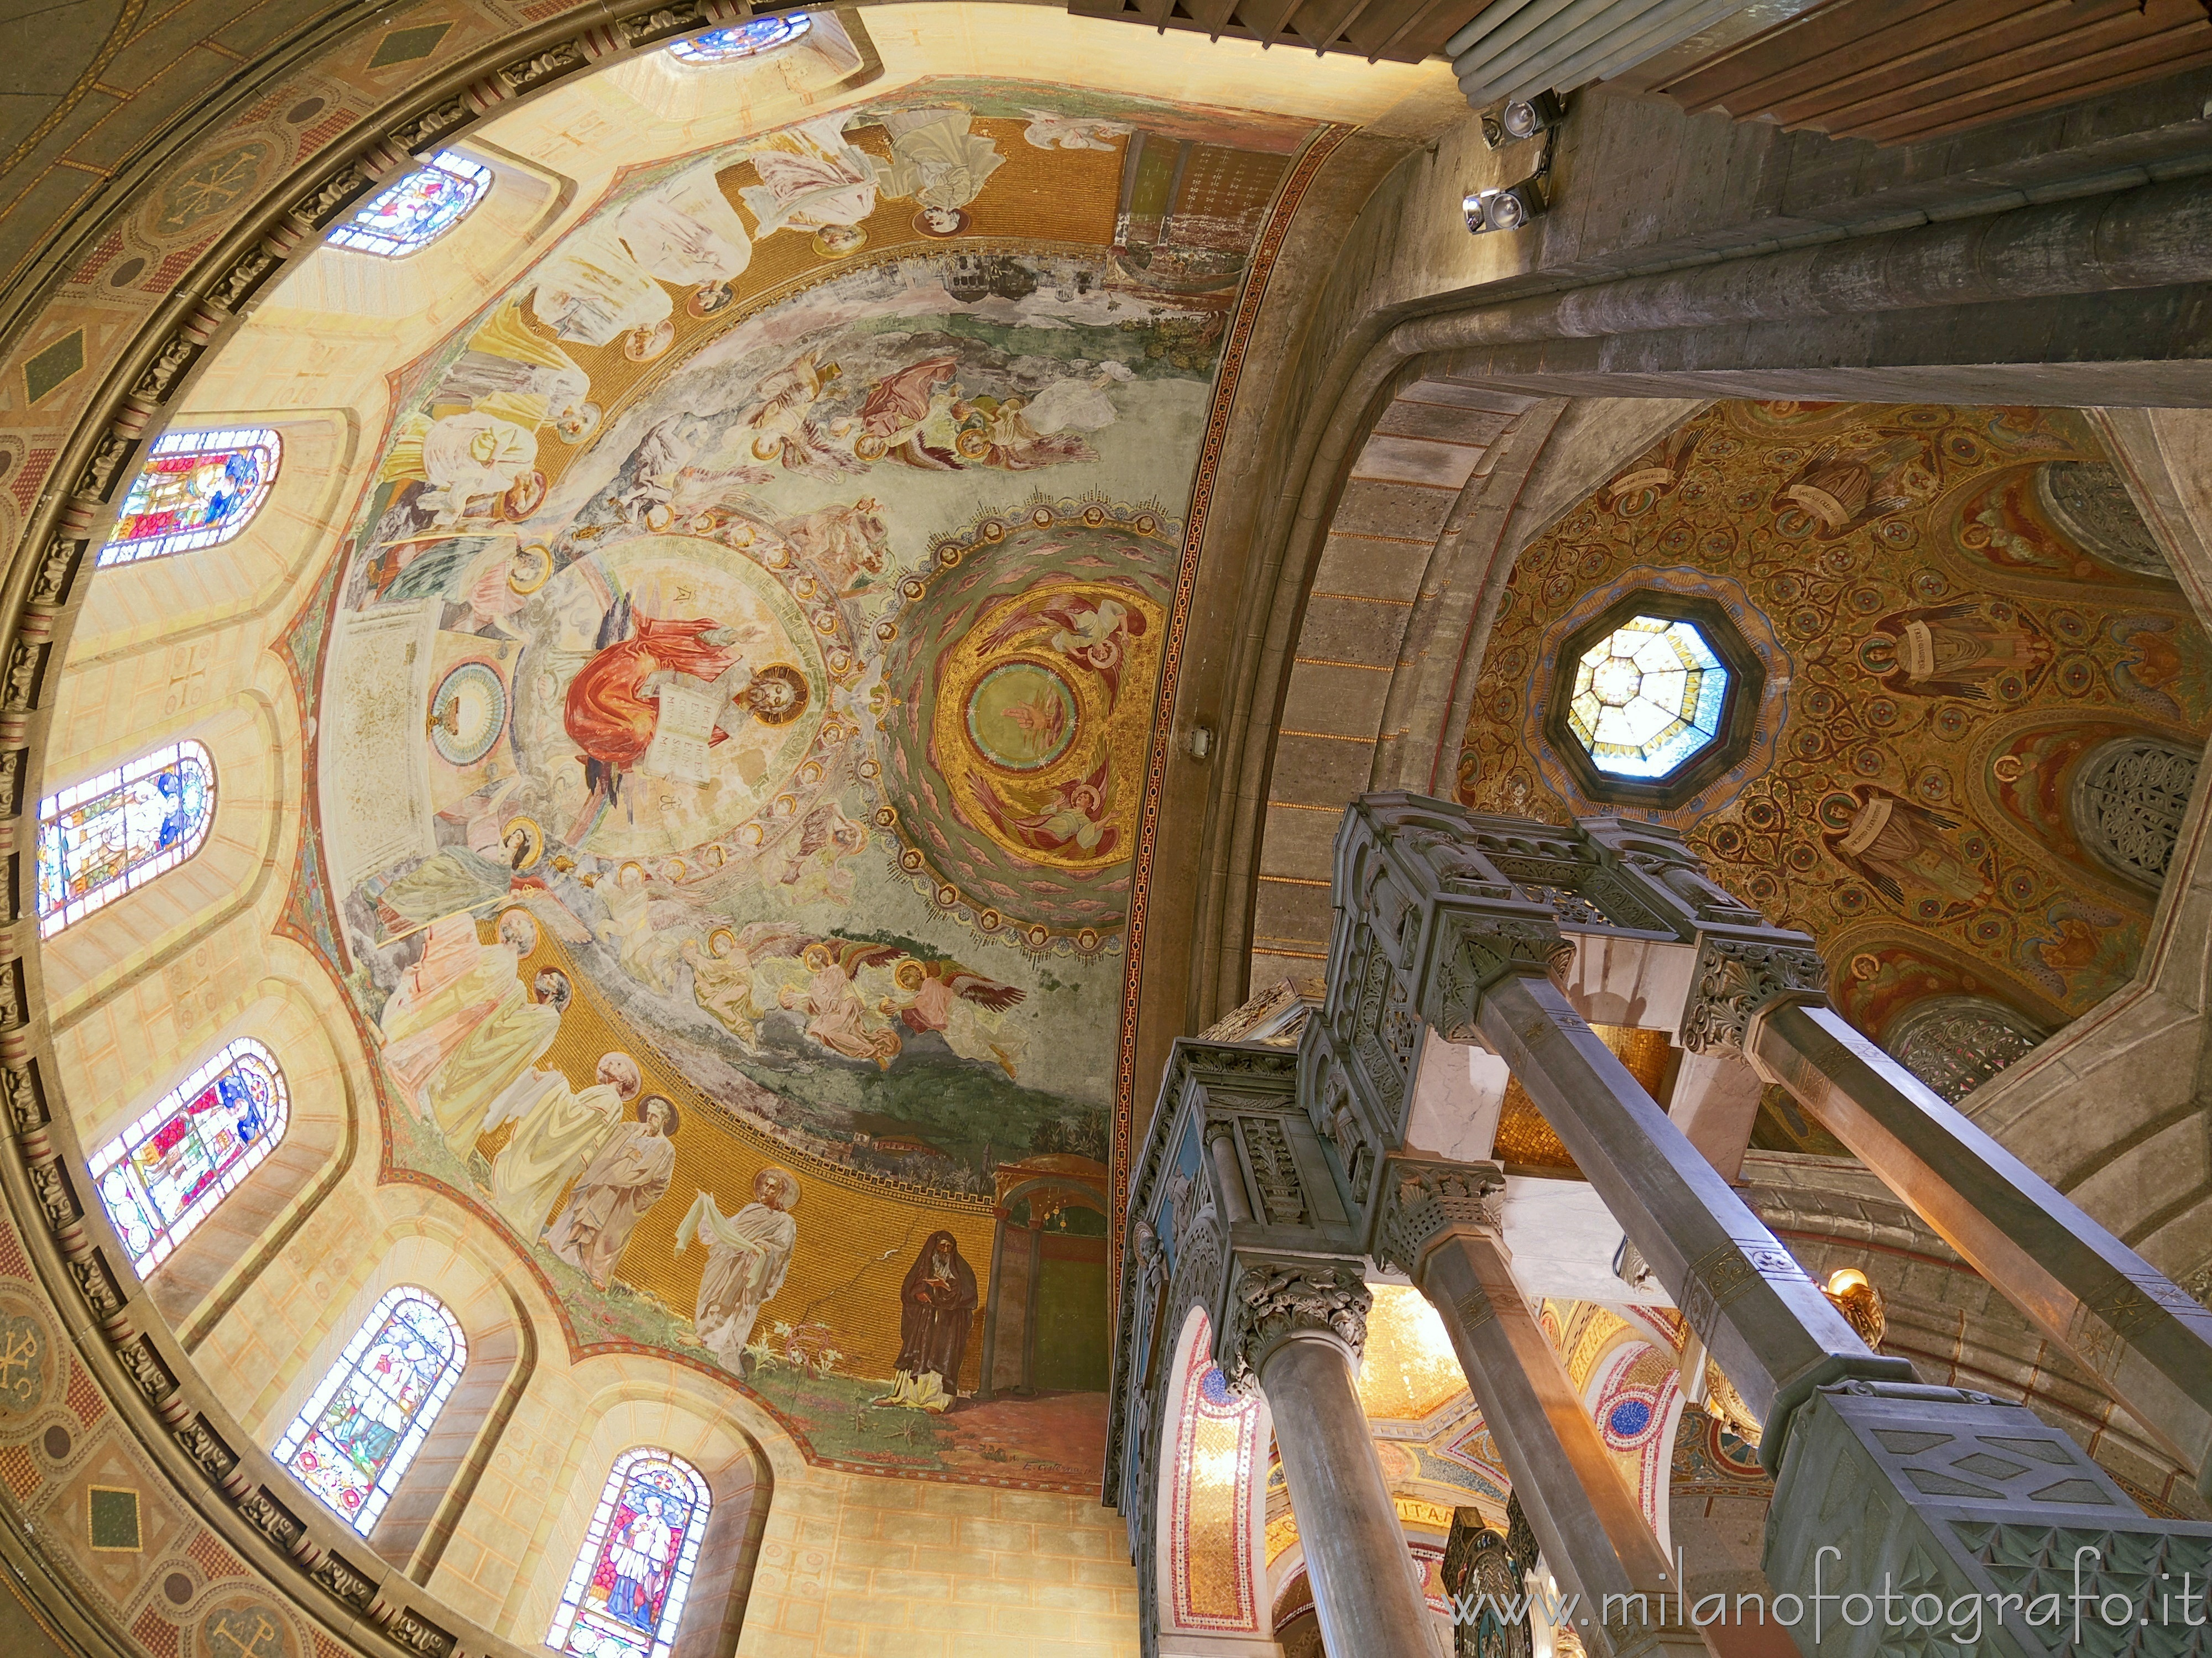 Milan (Italy): Looking up from behind the main altar of the Basilica of the Corpus Domini - Milan (Italy)